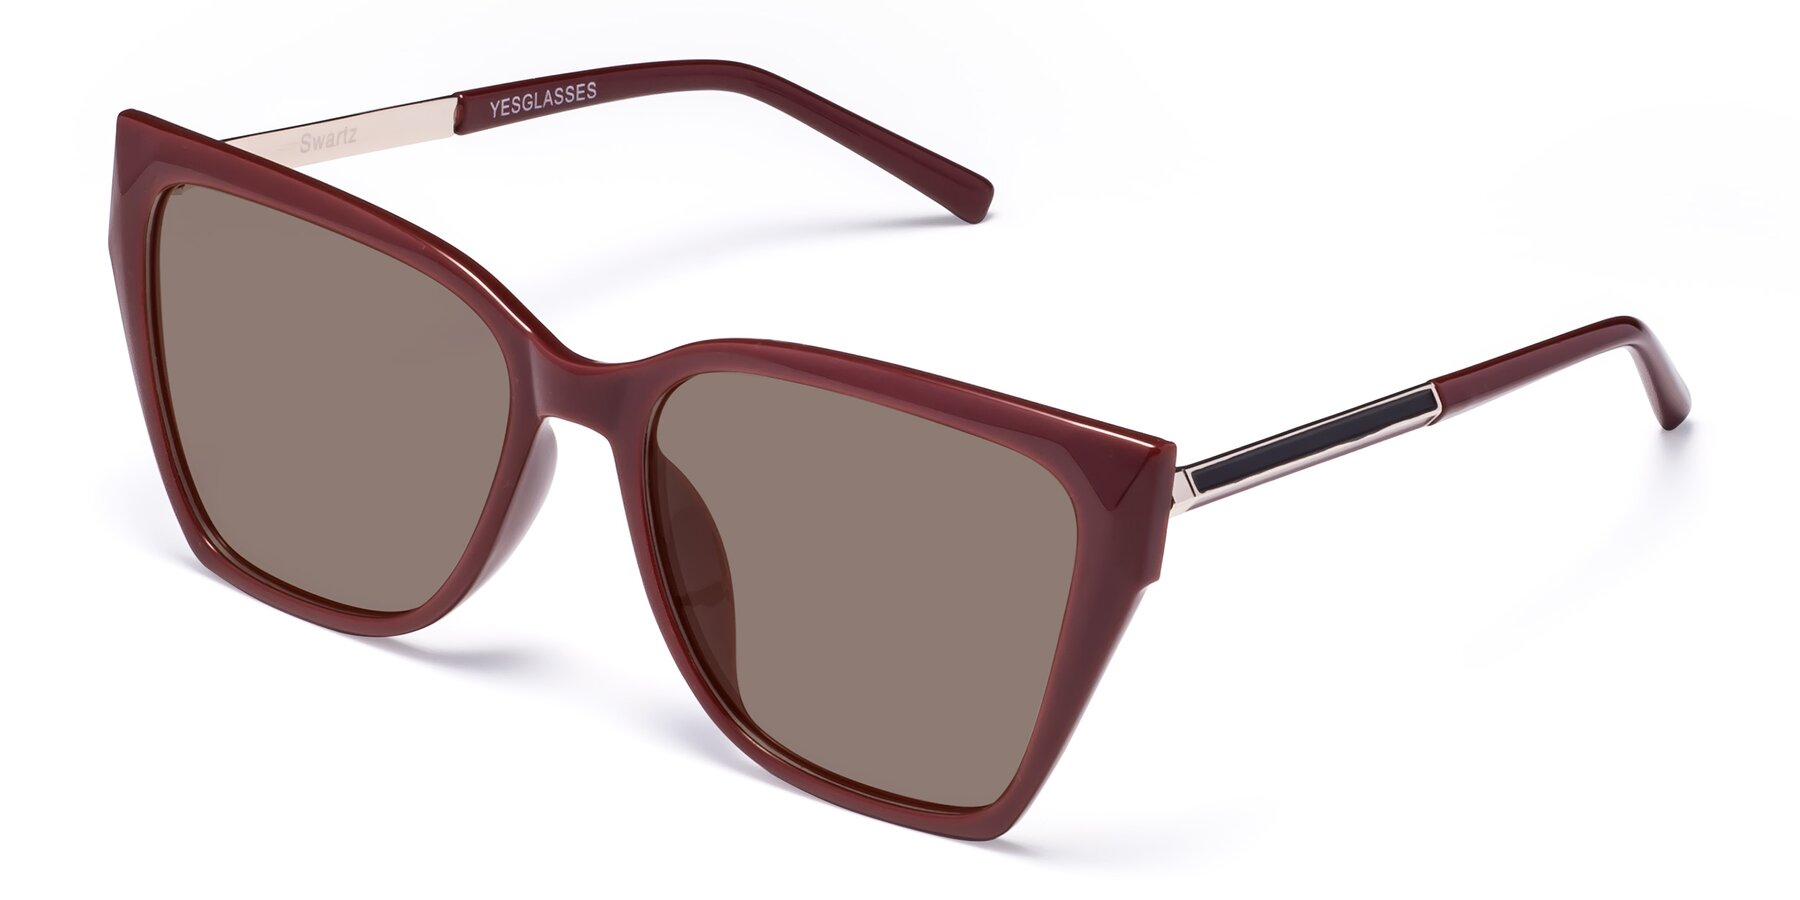 Angle of Swartz in Wine with Medium Brown Tinted Lenses